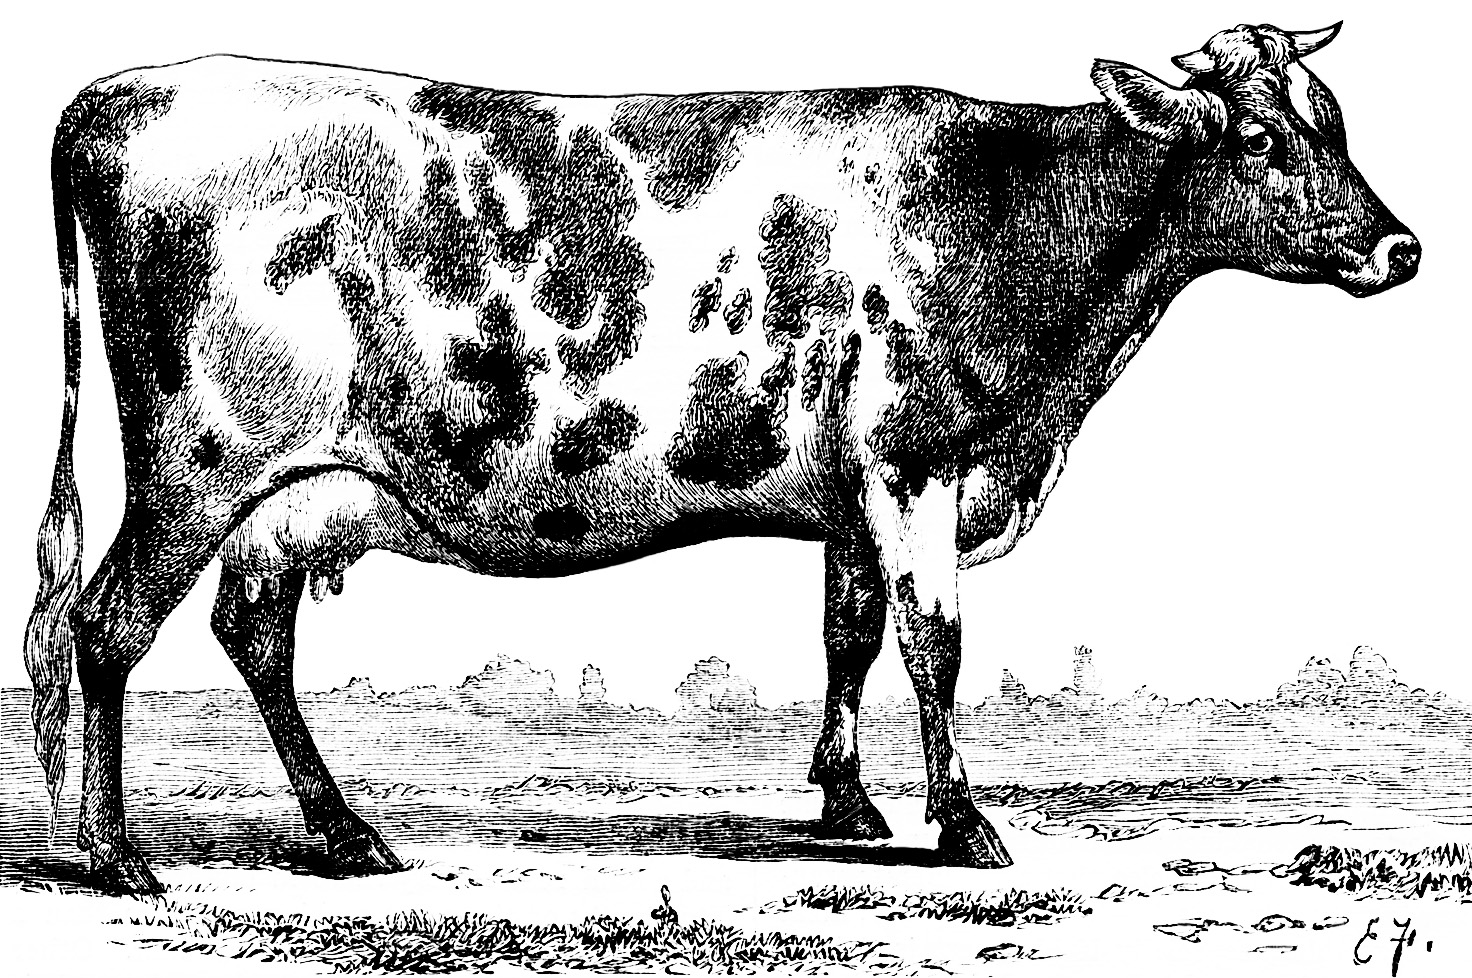 black and white clipart cow, vintage cow illustration, jersey ayrshire, vintage sketch cow, clip art farm animal